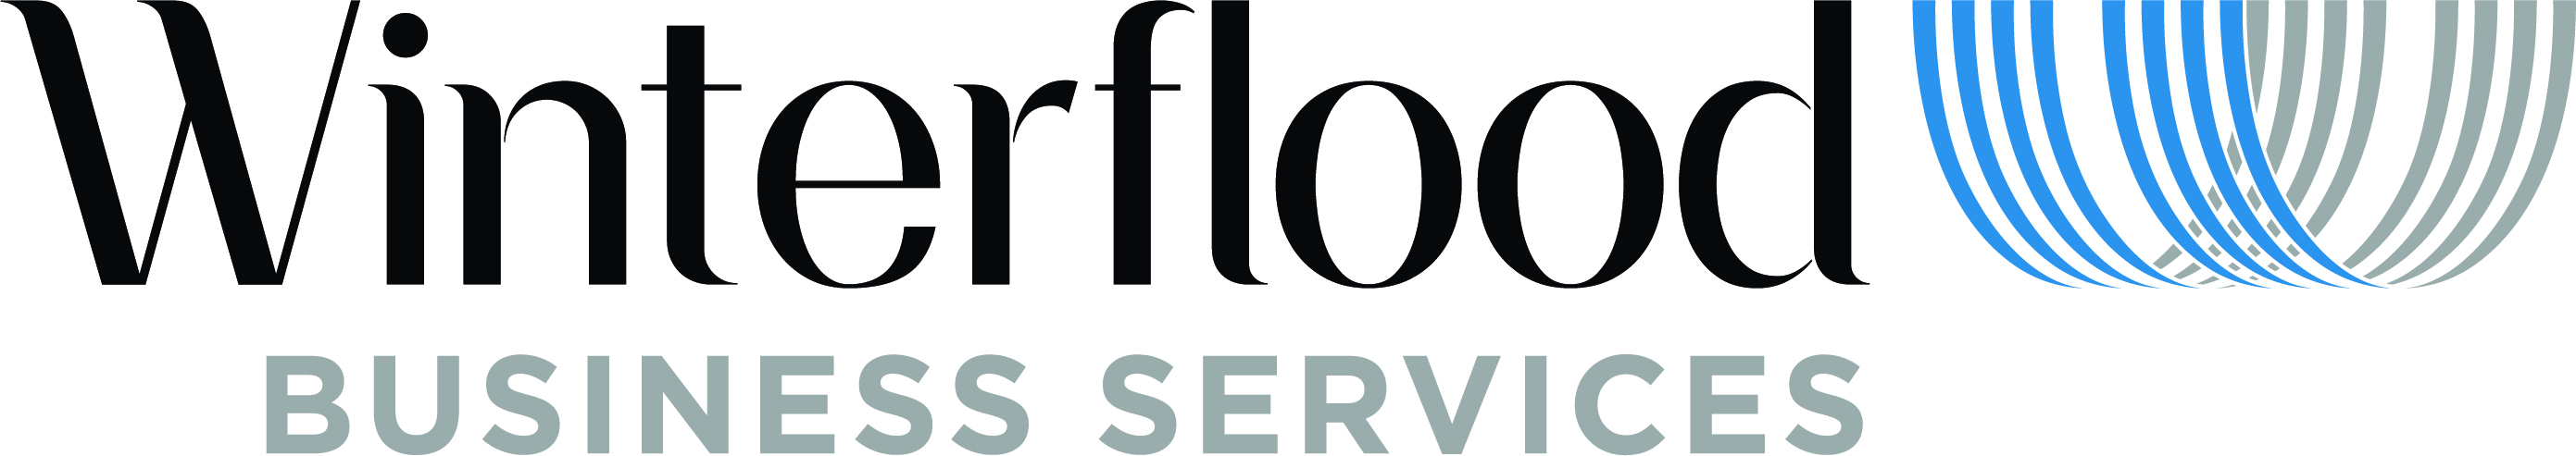 Winterflood Business Services logo